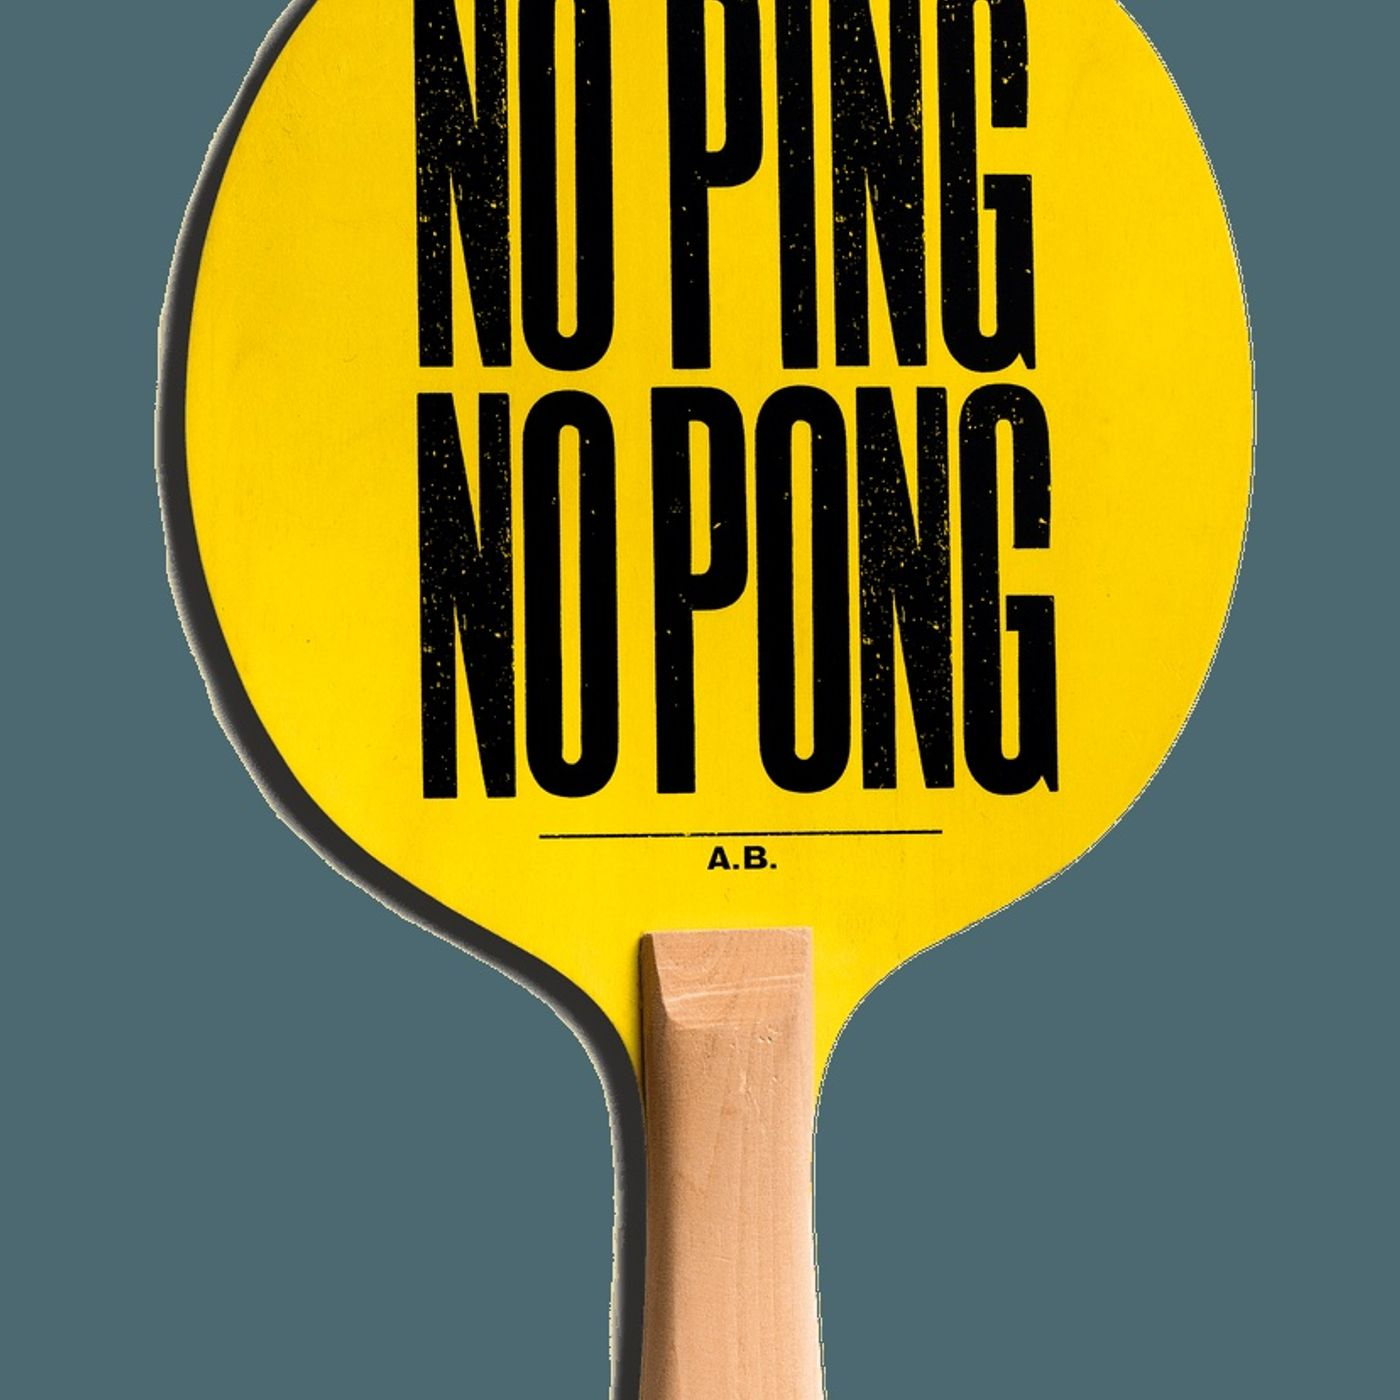 Episode 212 - No Ping, Nor Pong Here